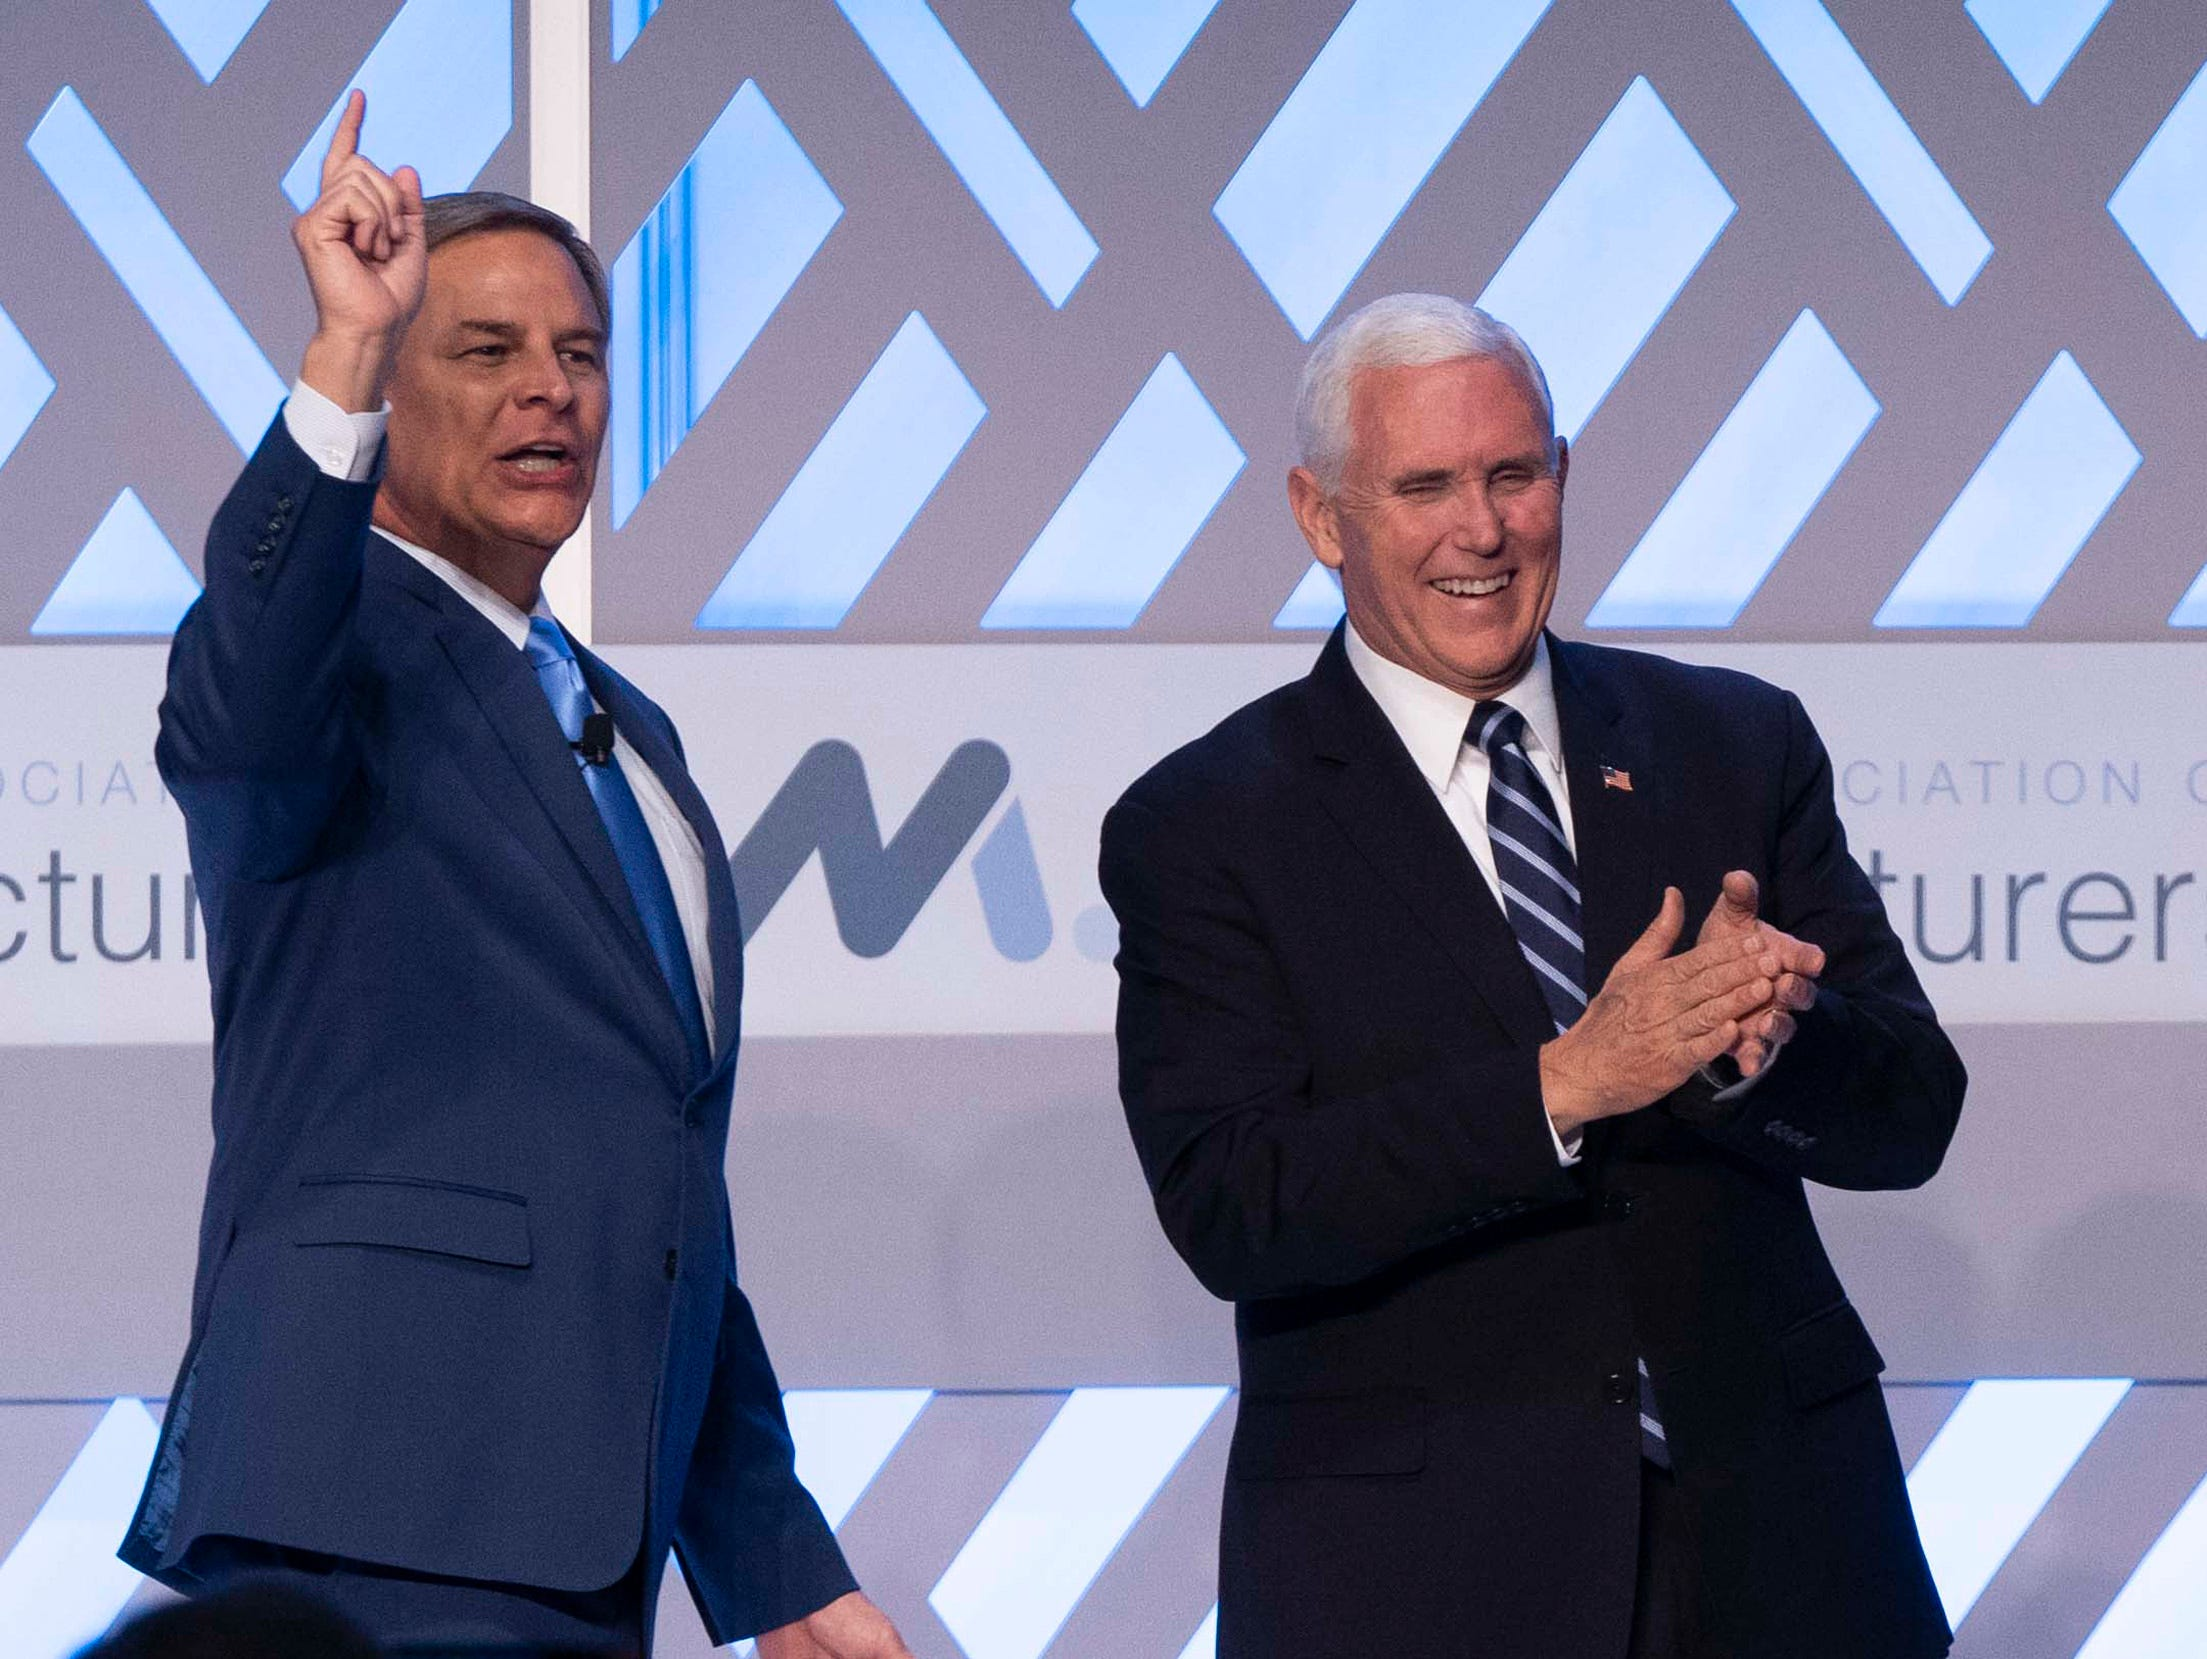 Jay Timmons (left), president and chief executive officer of the National Association of Manufacturers, and Vice President Mike Pence speak to representatives of the National Association of Manufacturers at the Phoenician resort in Phoenix on March 5, 2019.